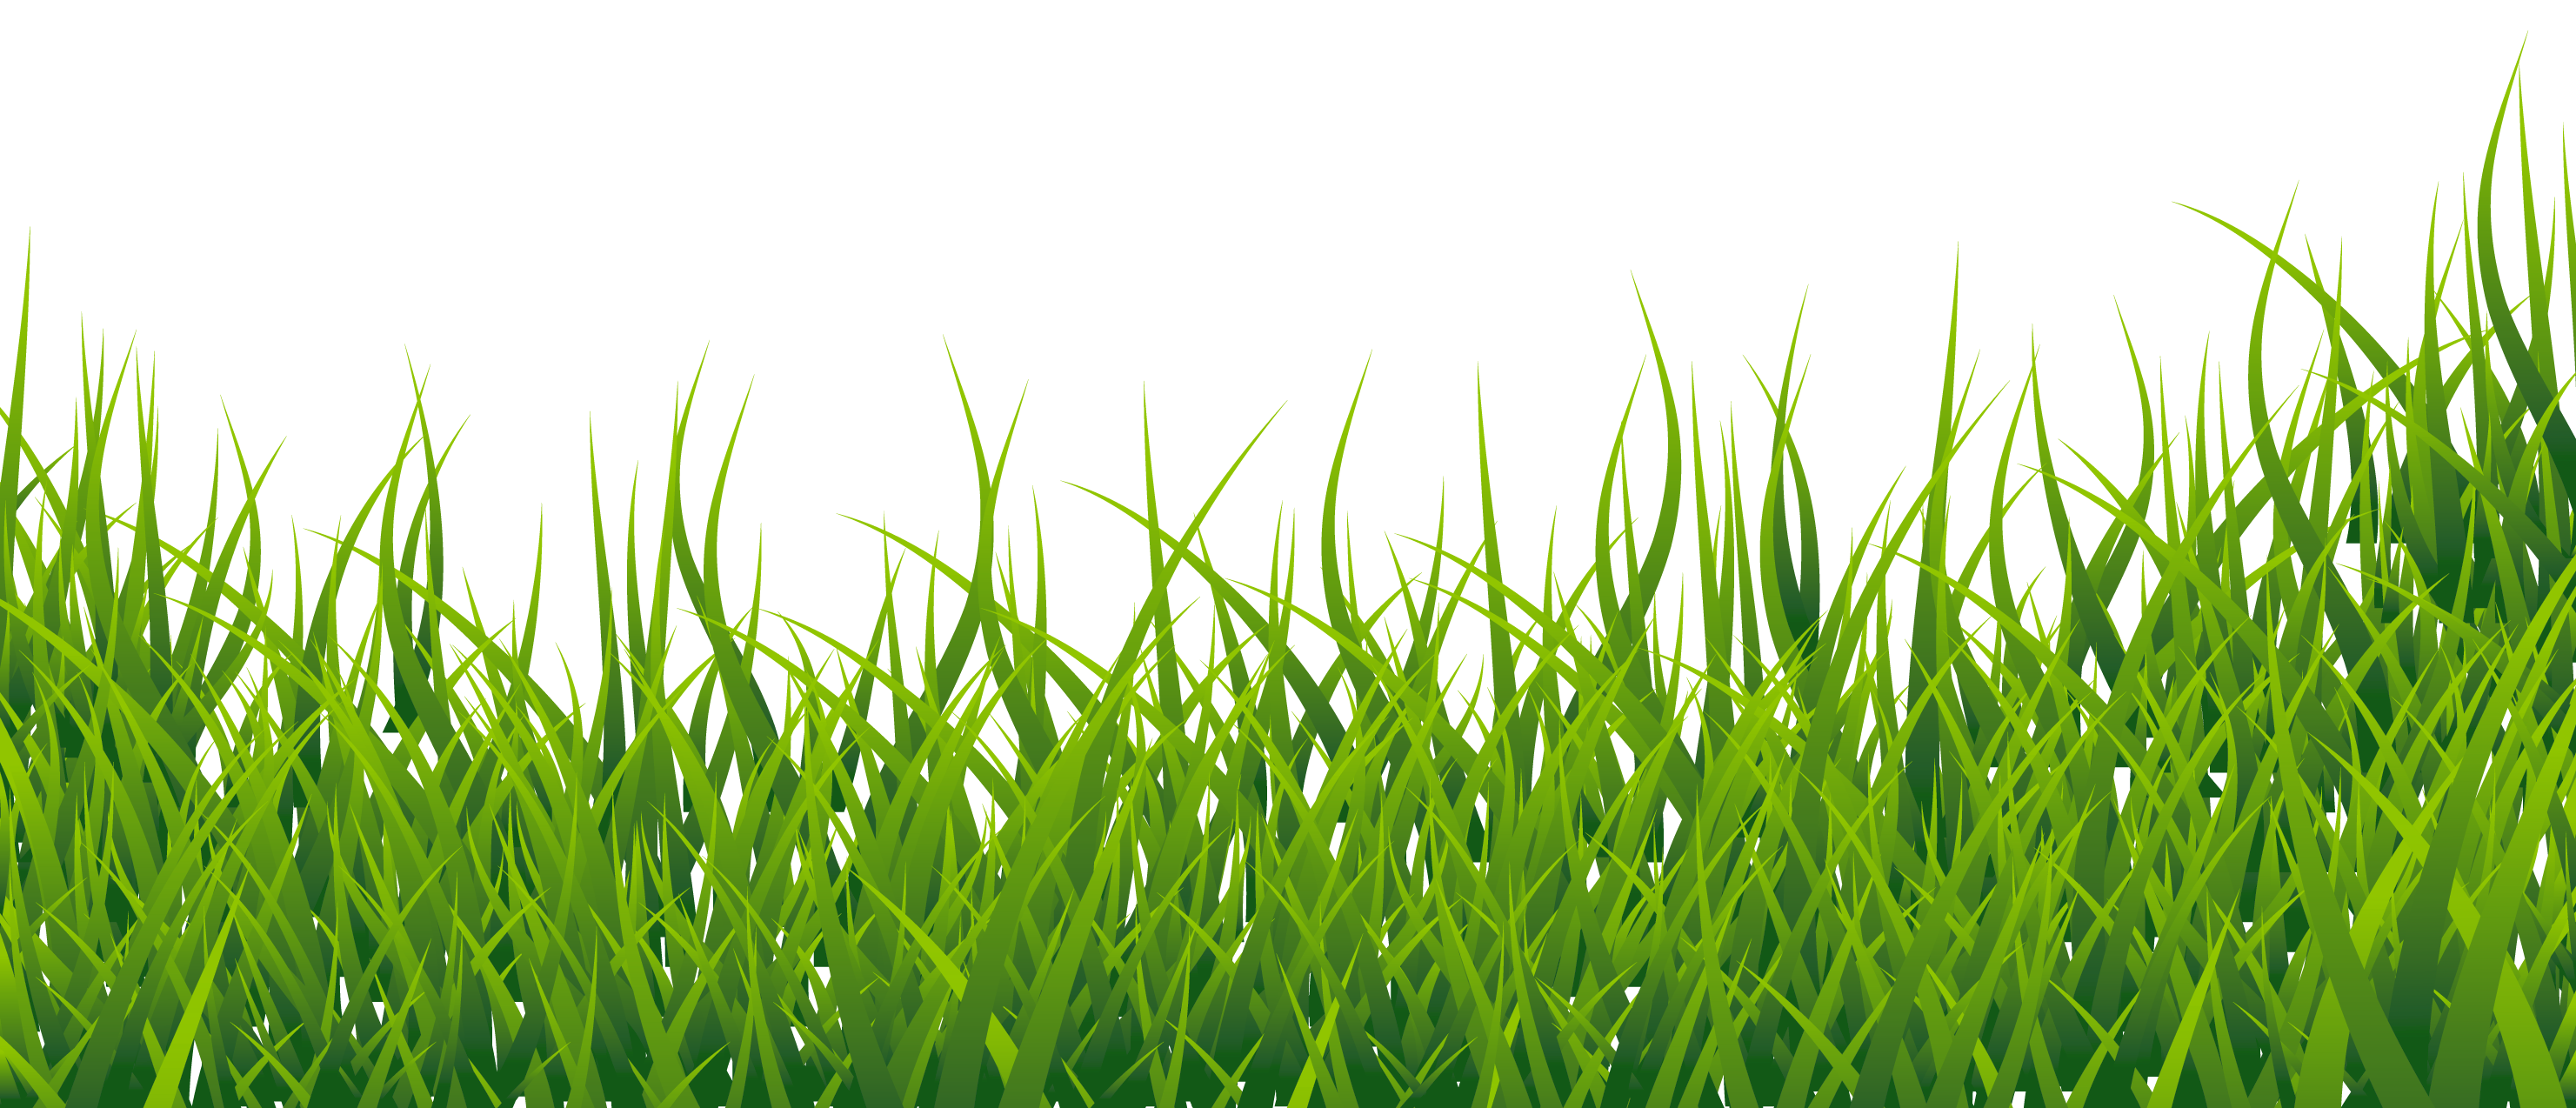 Grass clipart png. Picture gallery yopriceville high